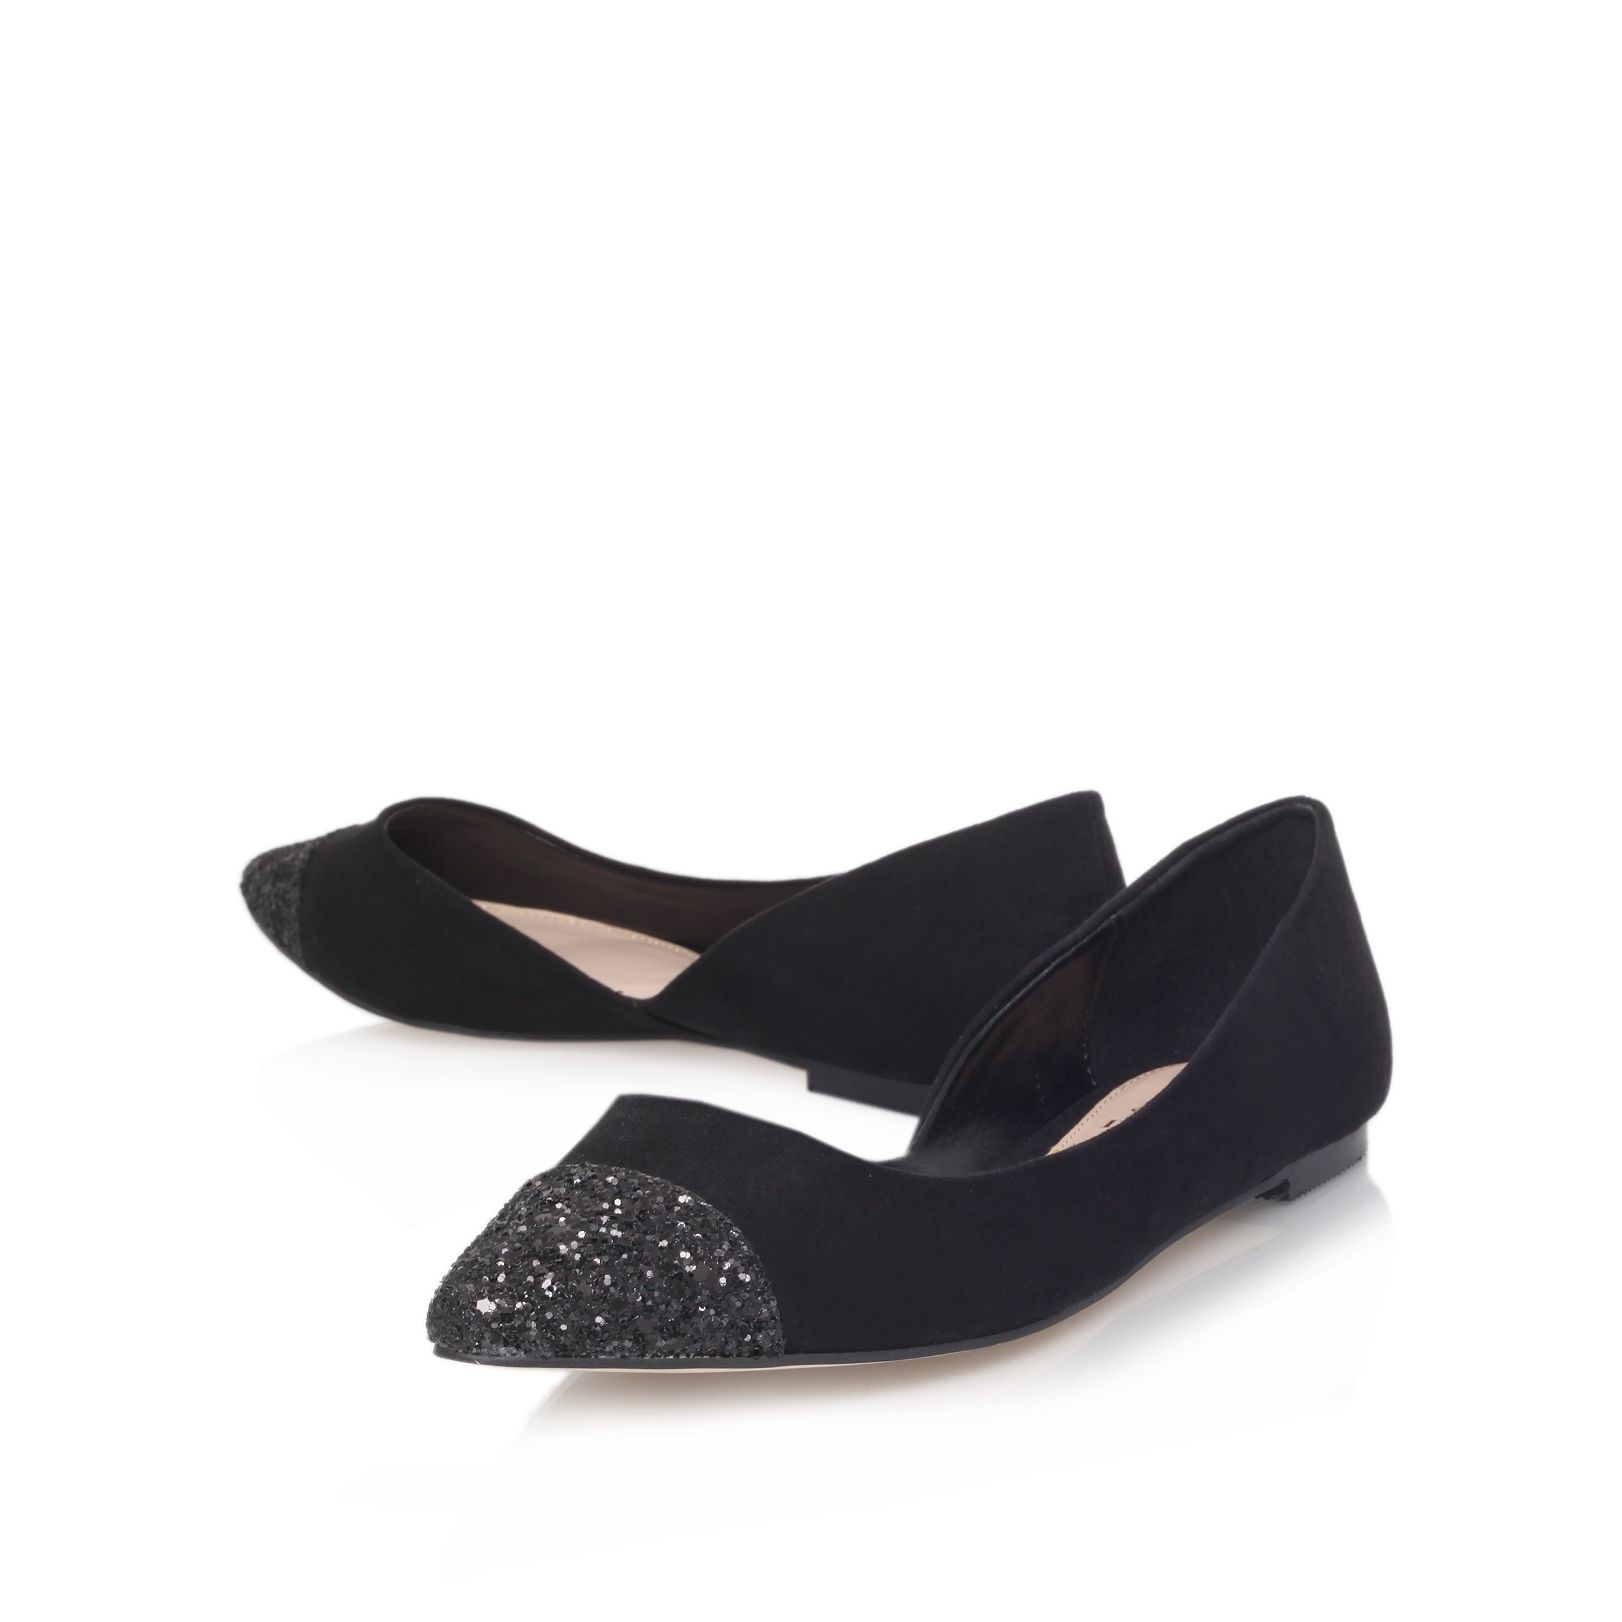 Grace flat slipper shoes